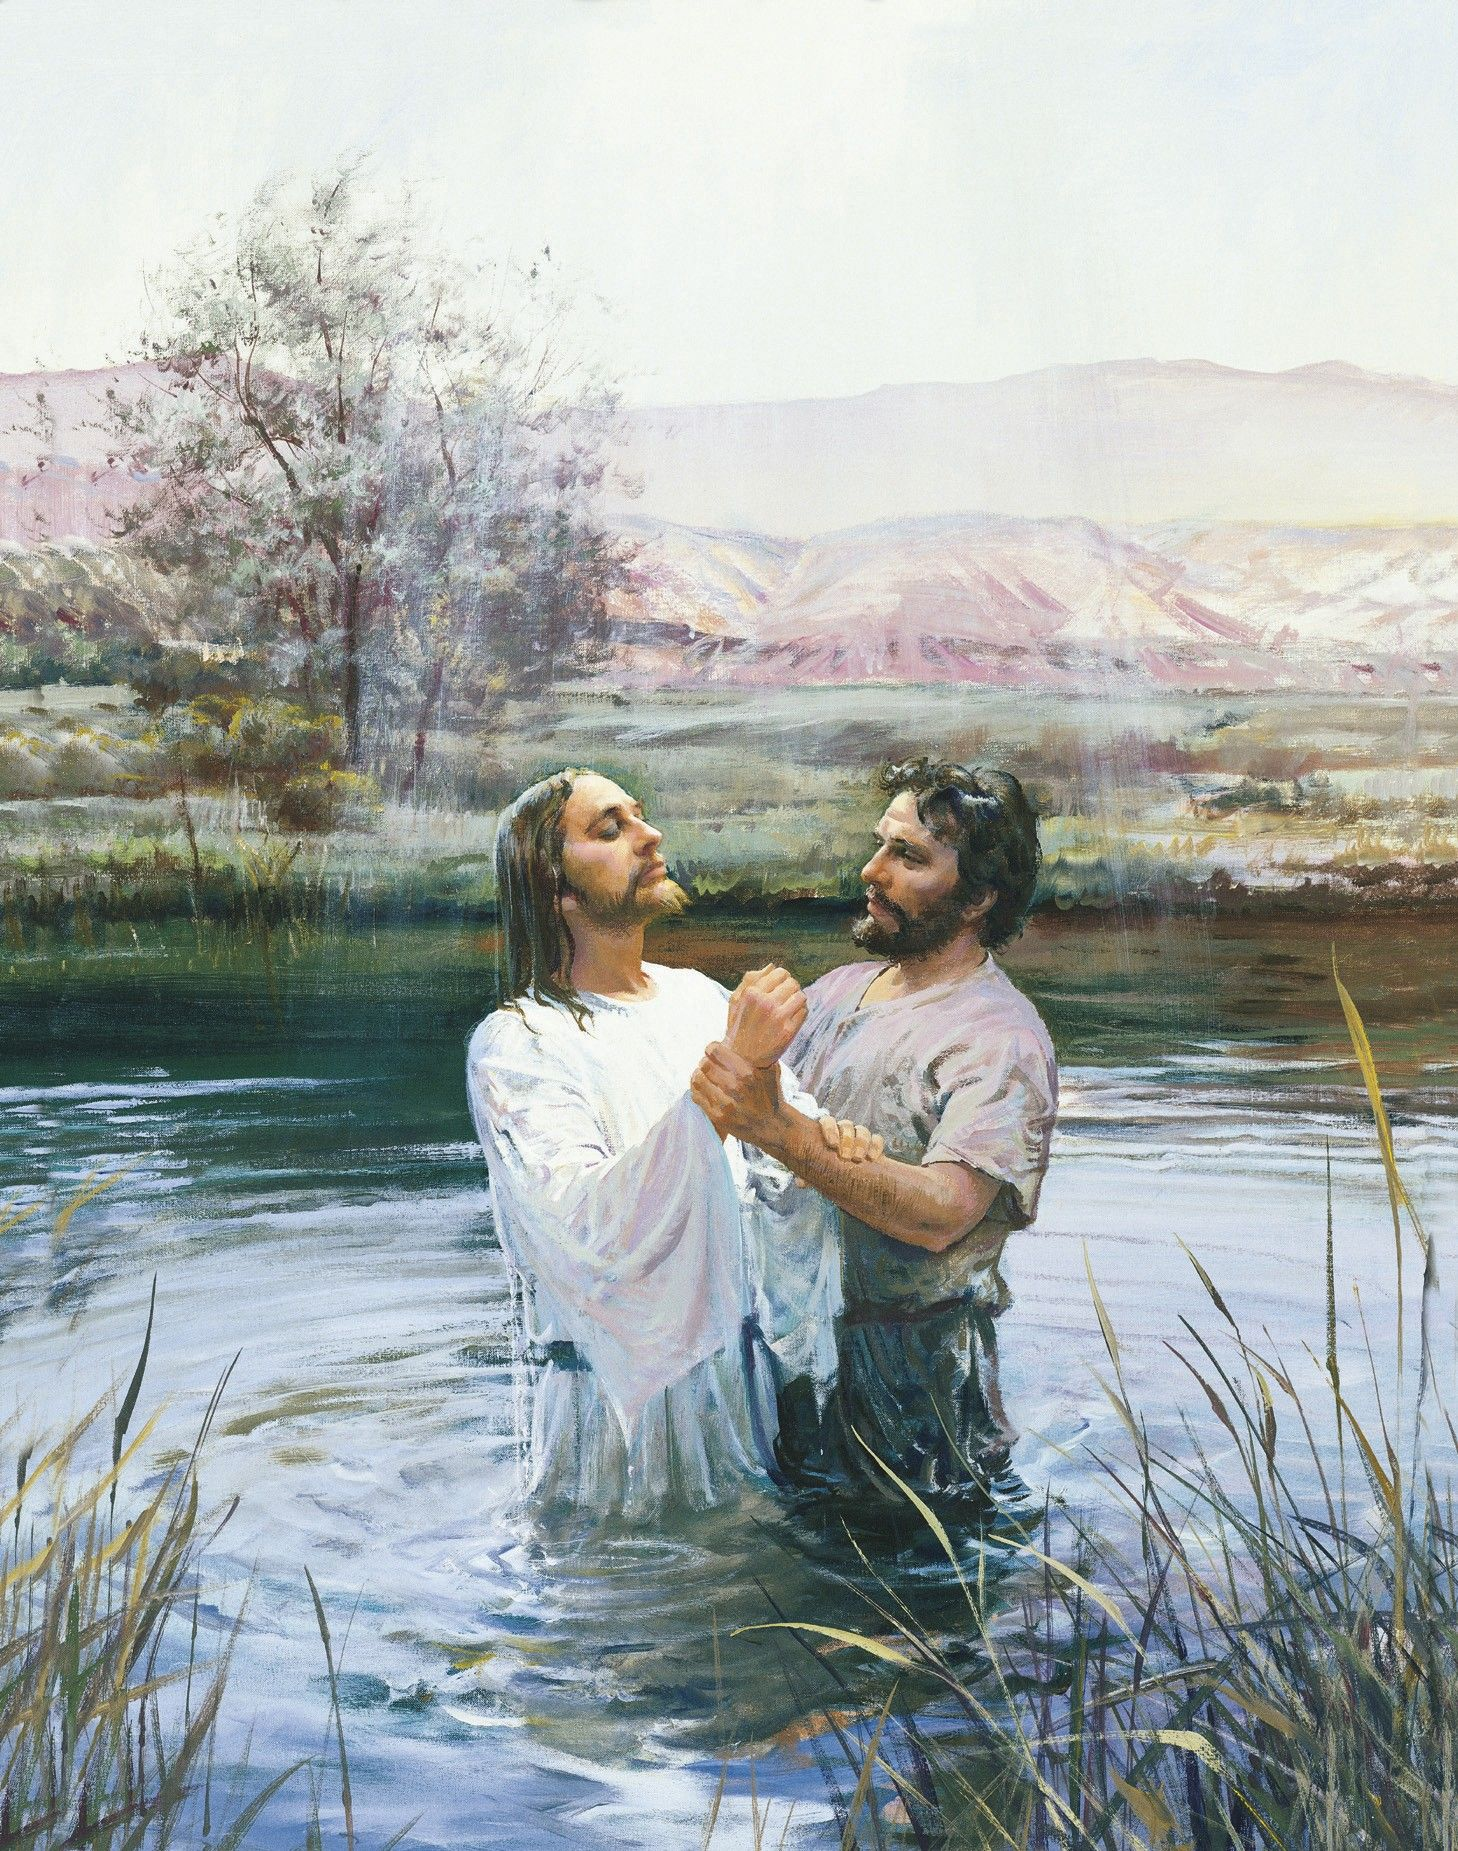 John the Baptist Baptizing Jesus (John Baptizing Jesus), by Harry Anderson (62133); GAK 208; GAB 35; Primary manual 1-18; Primary manual 2-19; Primary manual 3-01; Primary manual 7-07; Matthew 3:13–17; Joseph Smith Translation, Matthew 3:43–46 (in the Bible appendix); Mark 1:9–11; 2 Nephi 31:4–13